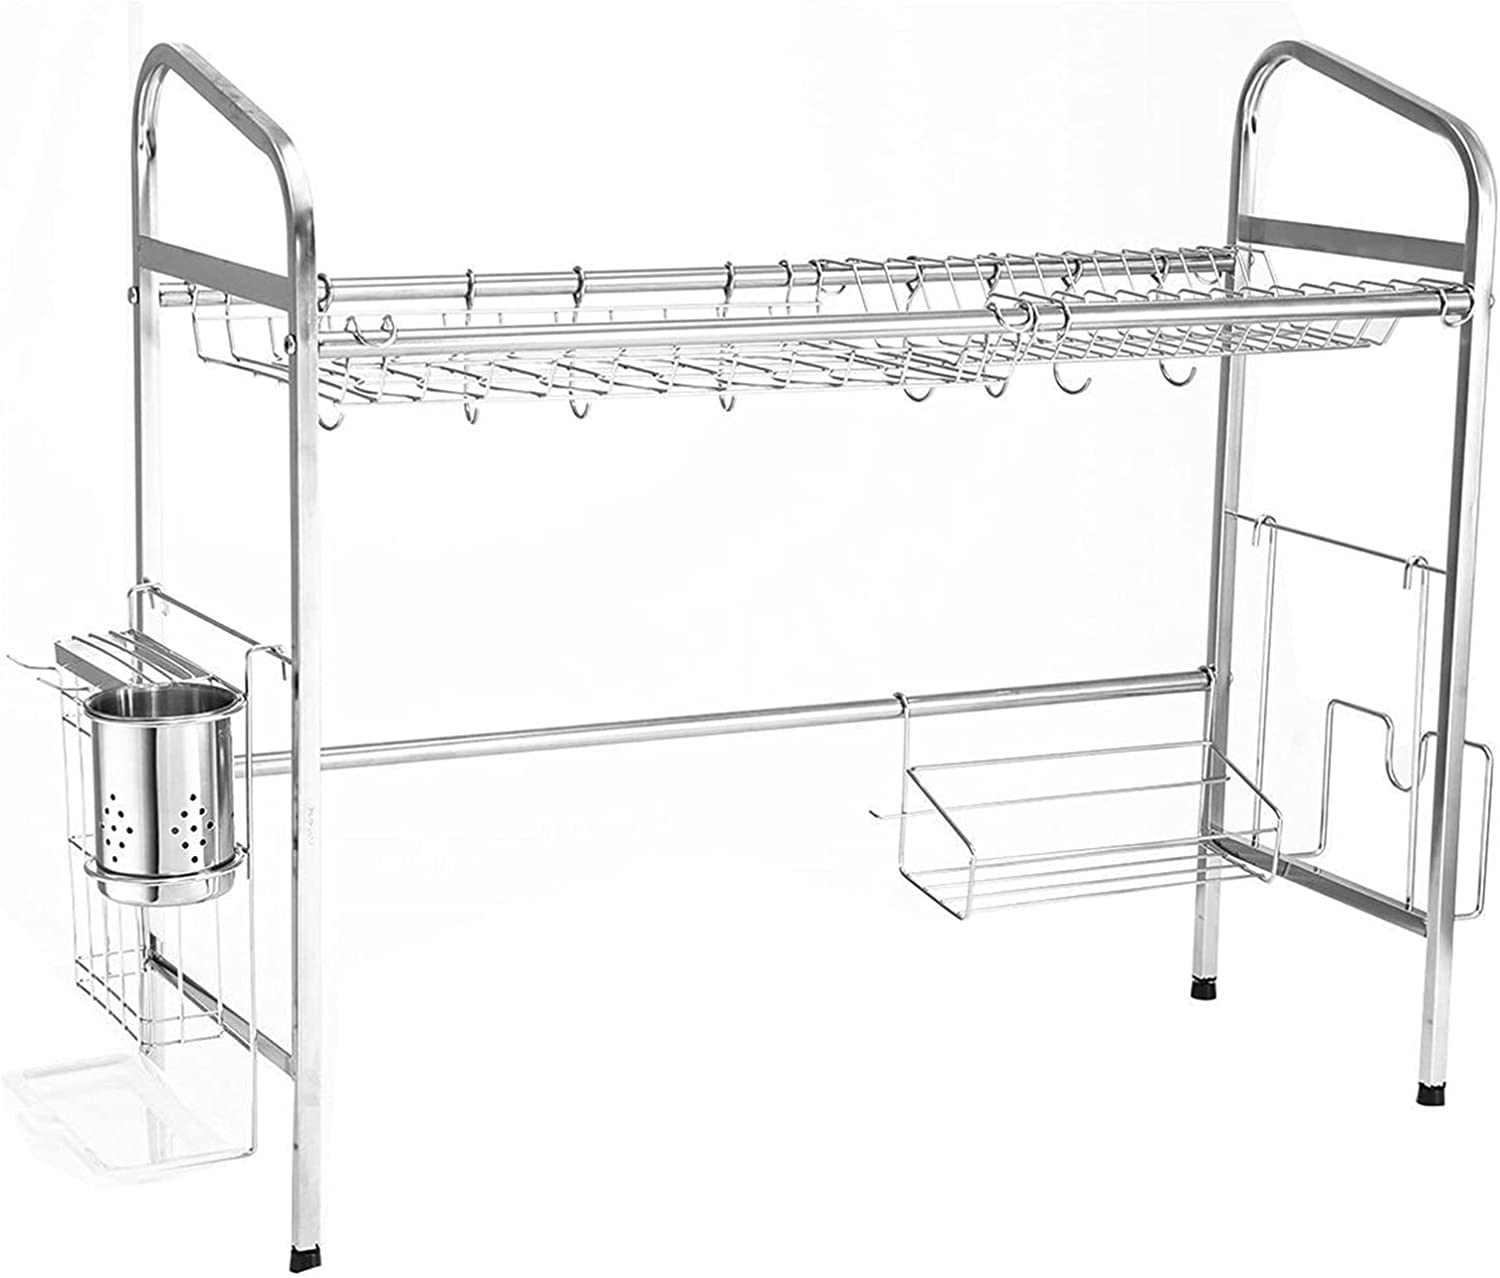 Dish drying Tampa Mall Under blast sales Stainless-Steel-Drainer-Easy-Install-Non-Slip- rack